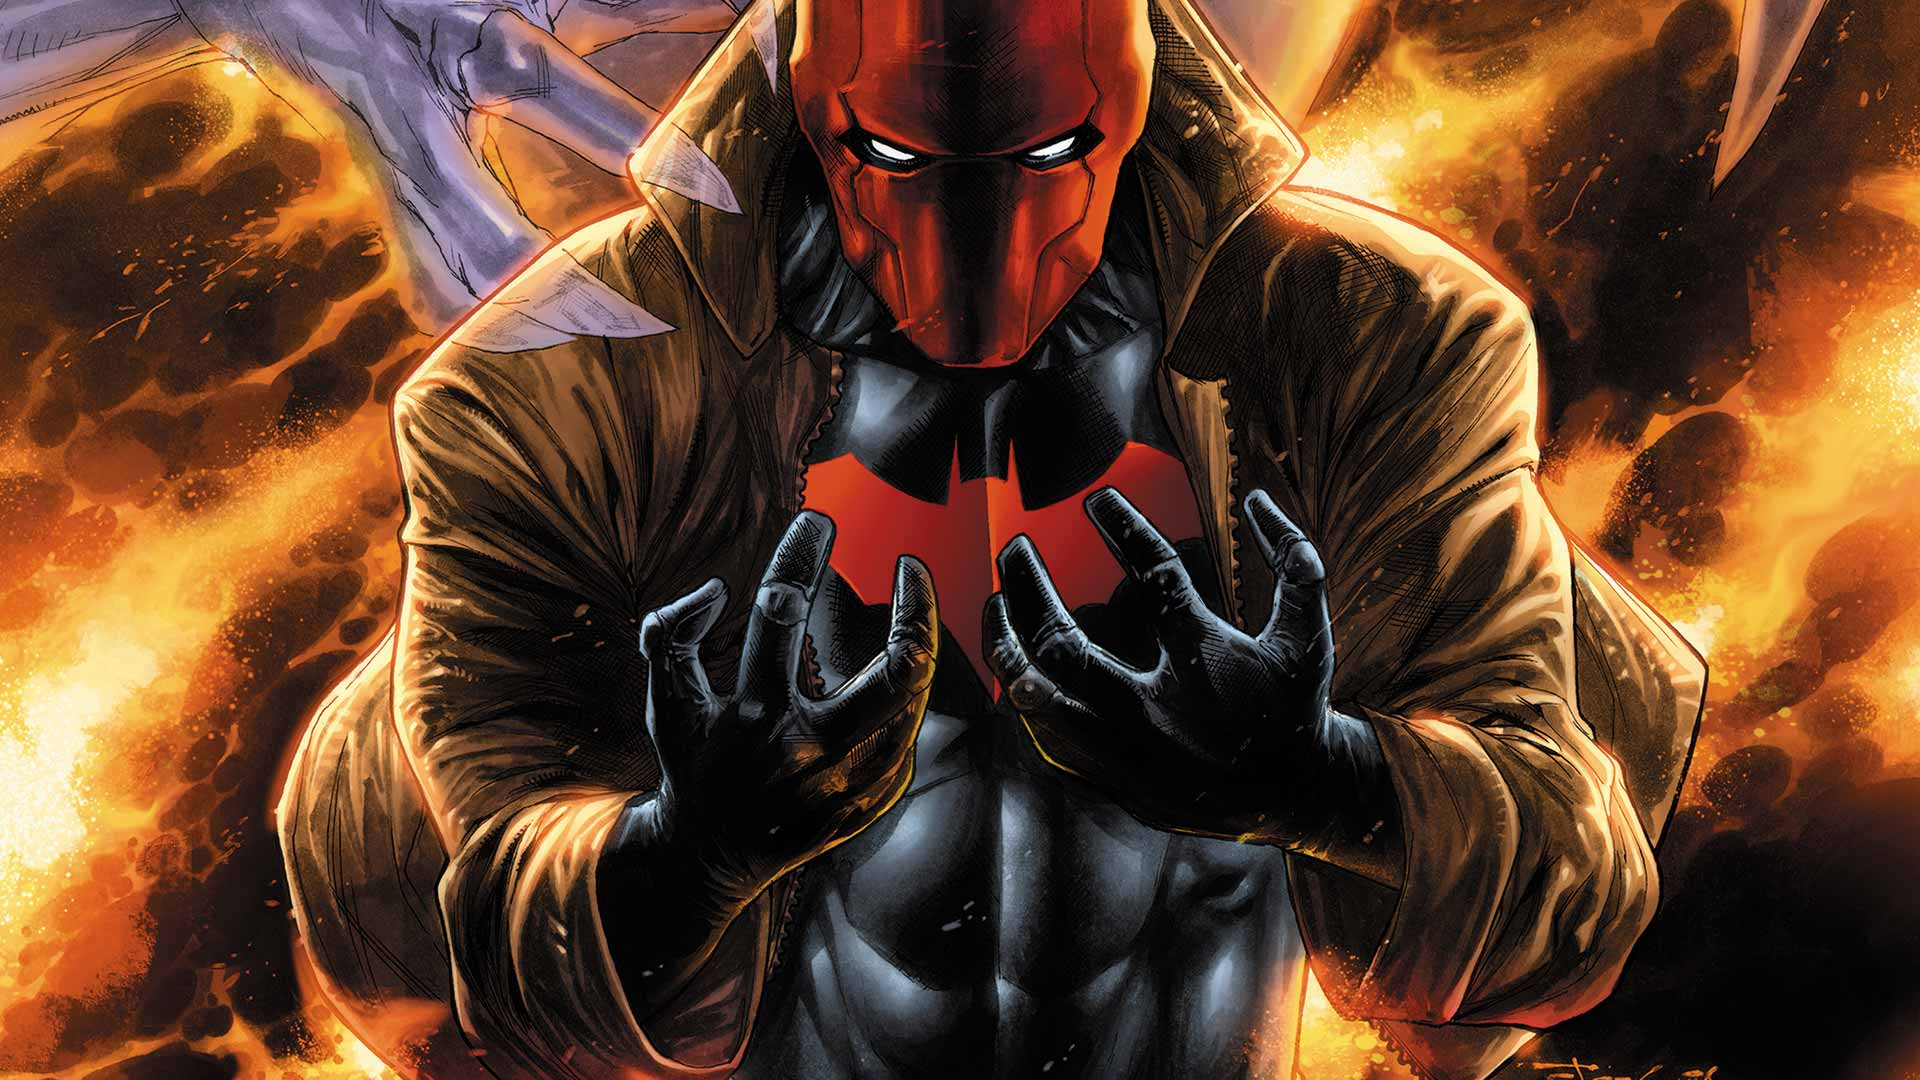 The Hunters Guild: Red Hood Chapter 5 Release Date, Recap And Spoiler Alert!